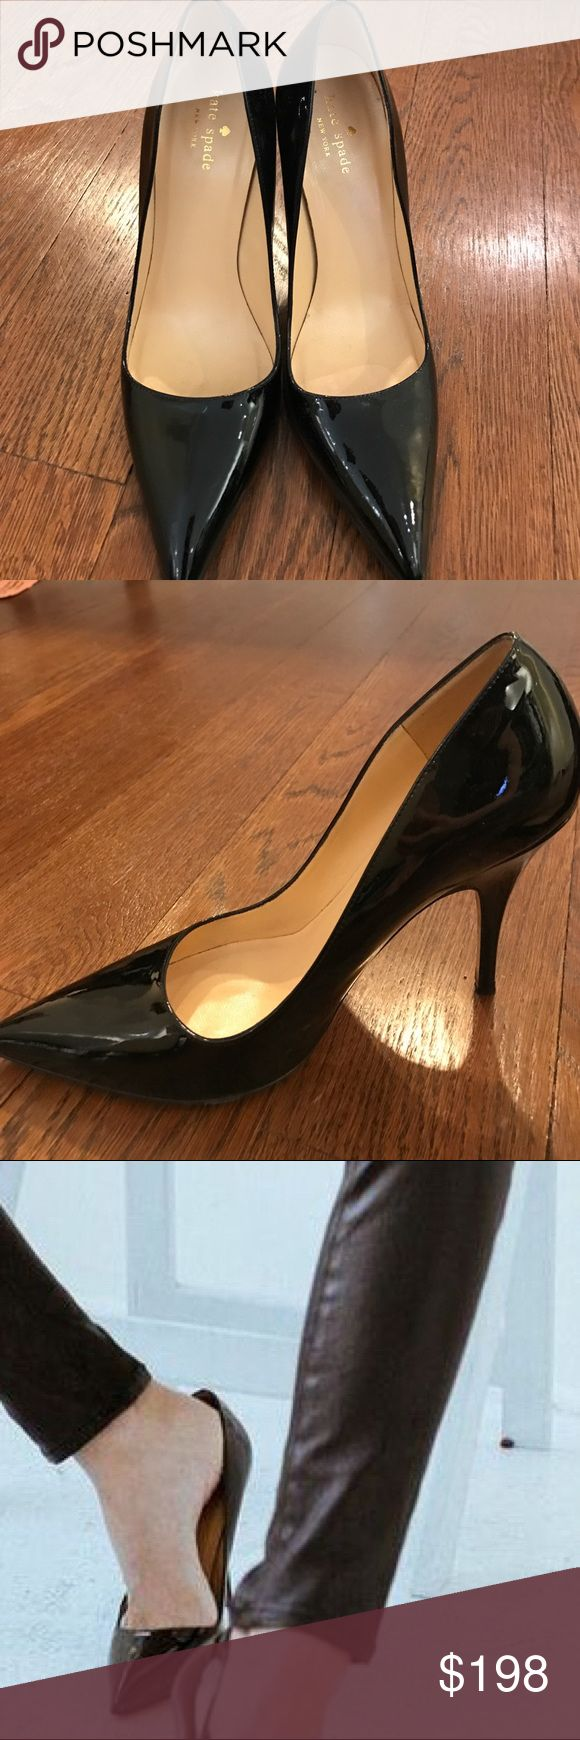 Kate Spade Patent Leather Shoe Black Kate Spade Heel (size 9.5) Patent leather LICORICE heels. Worn Once for a photo shoot. kate spade Shoes Heels